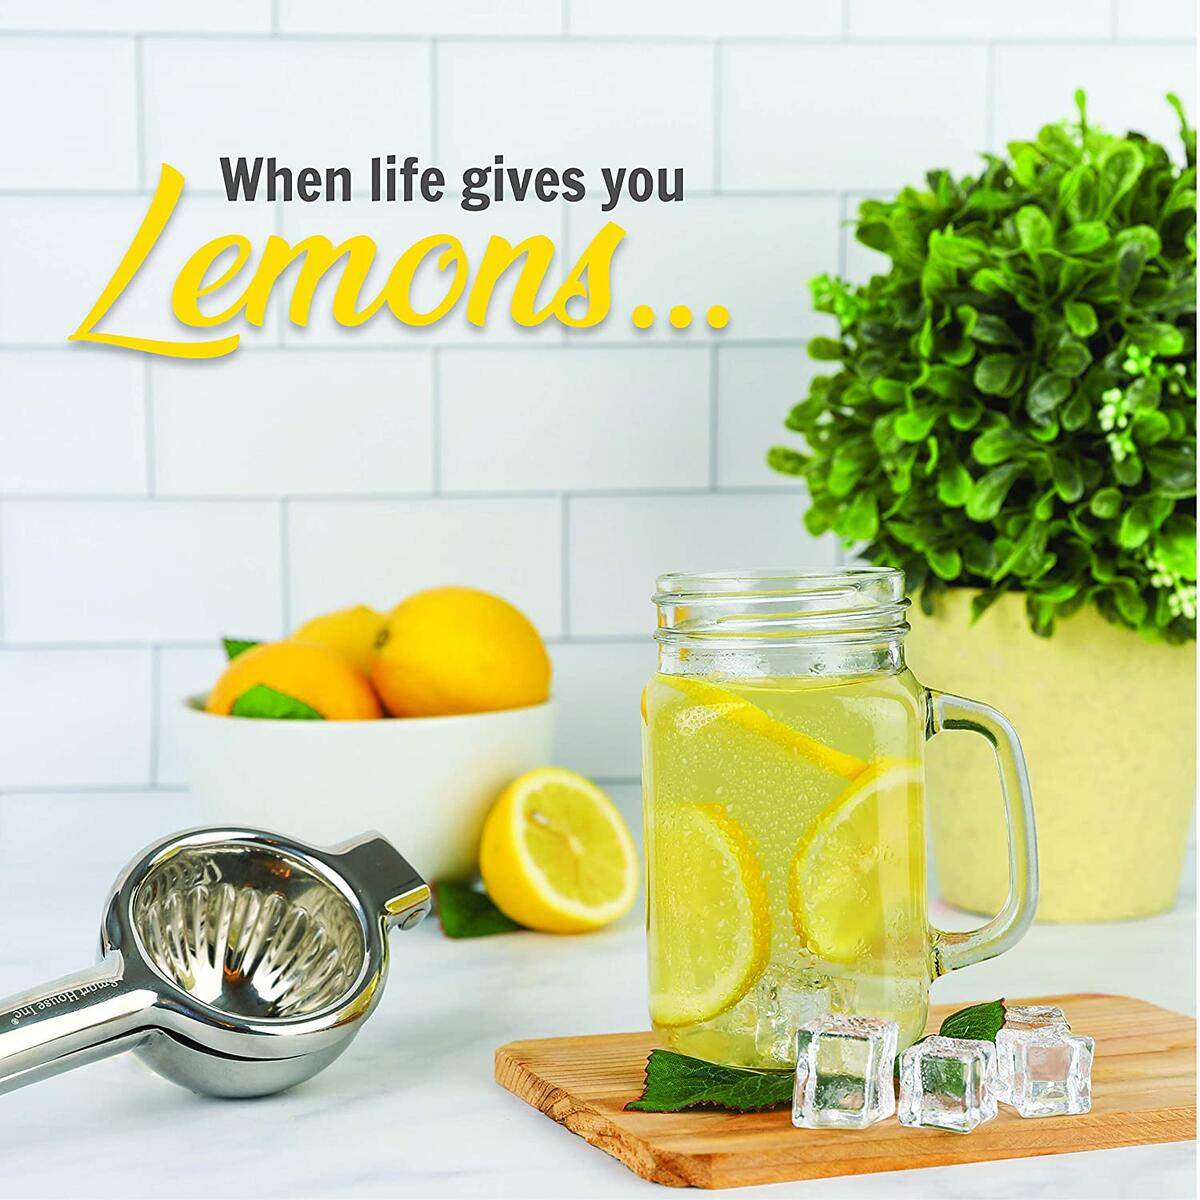 Extra-Large Stainless Steel Lemon Lime Squeezer - Manual Press - Citrus Juicer with Filter